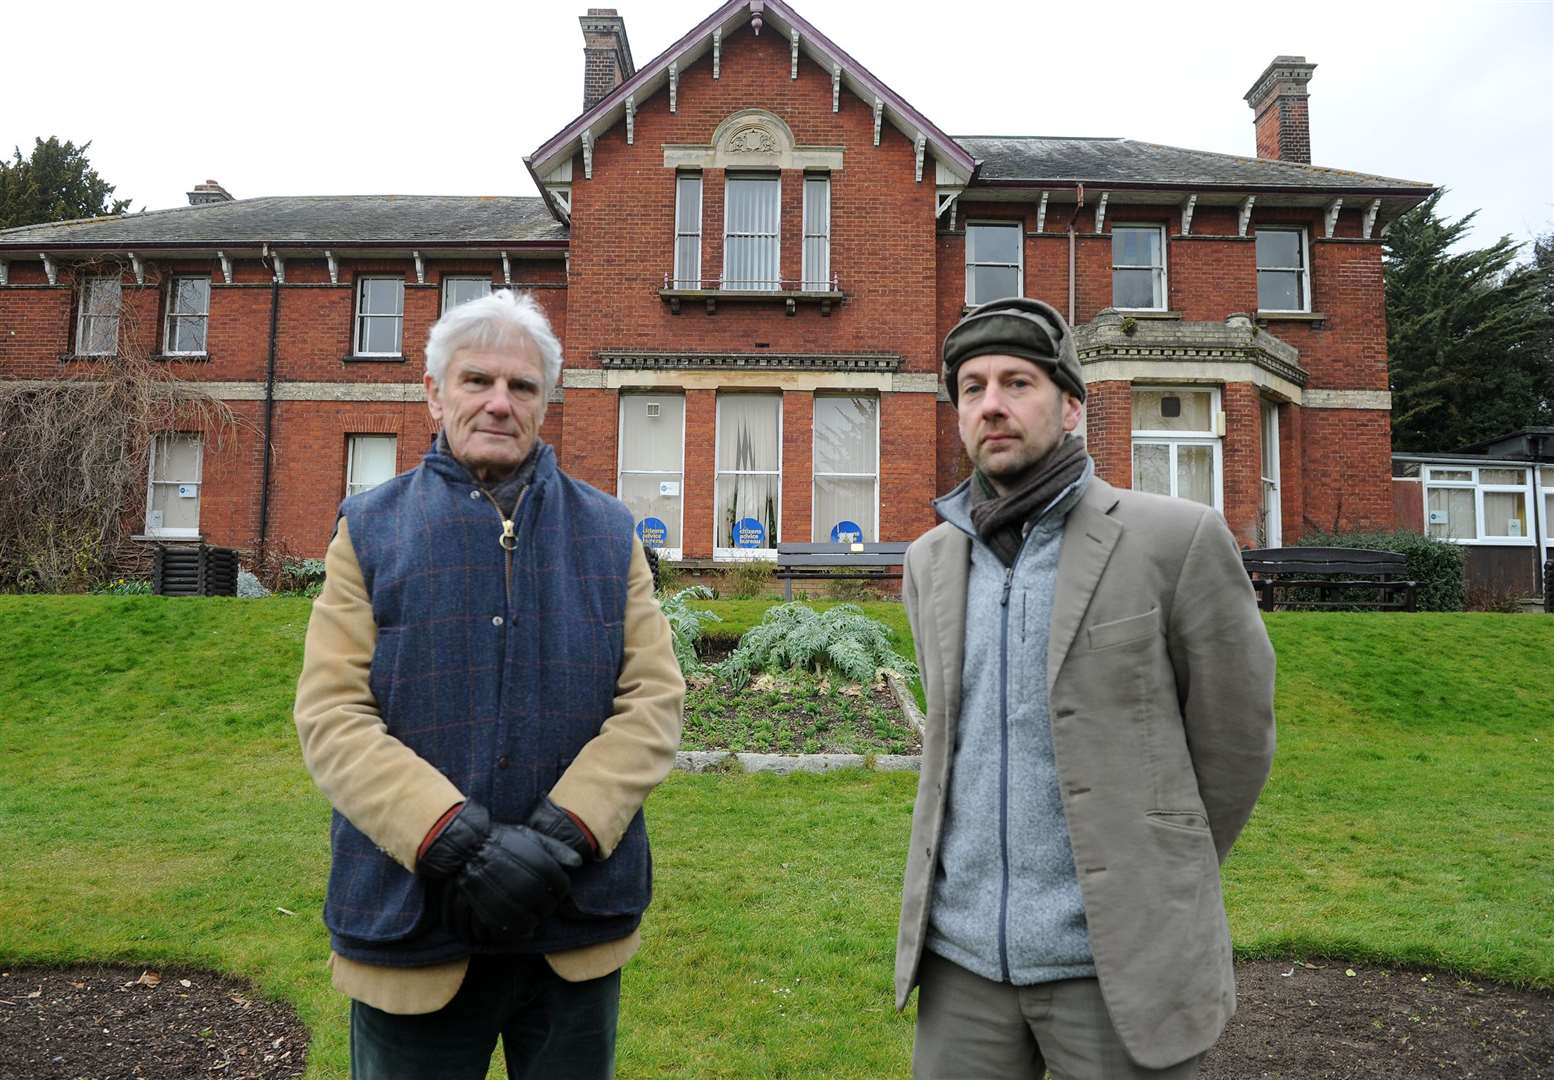 Andrew Phillips (left) strongly opposes demolishing Belle Vue House in Sudbury, pictured with Theo Bird who has previously campaigned to save the site.